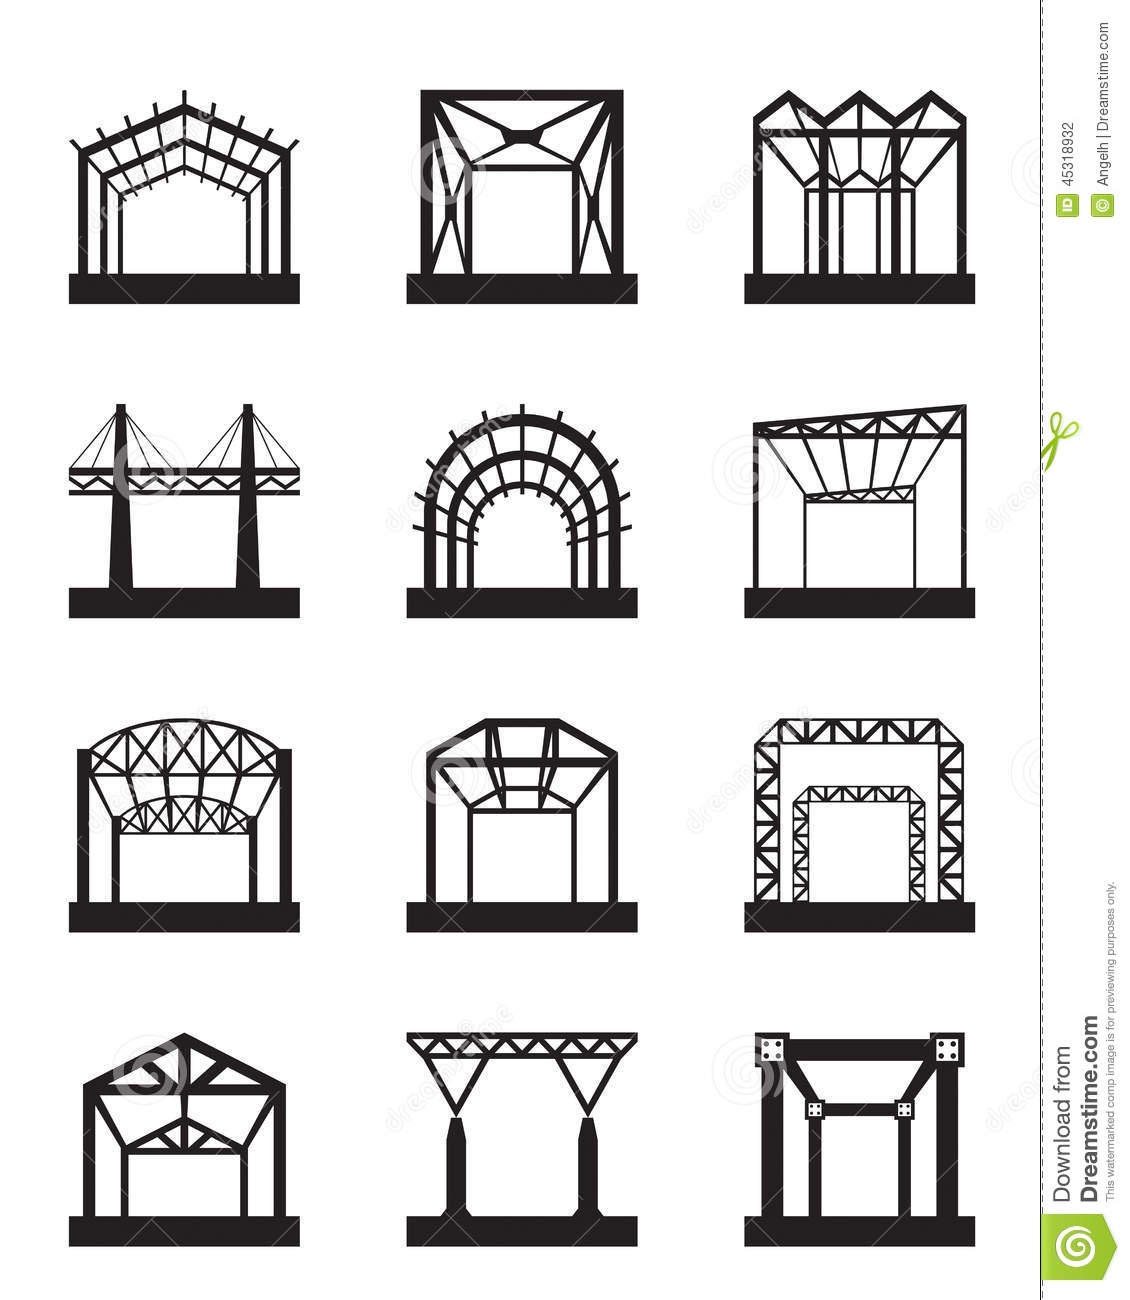 Metal structures icon set stock vector image of - Estructuras de metal ...